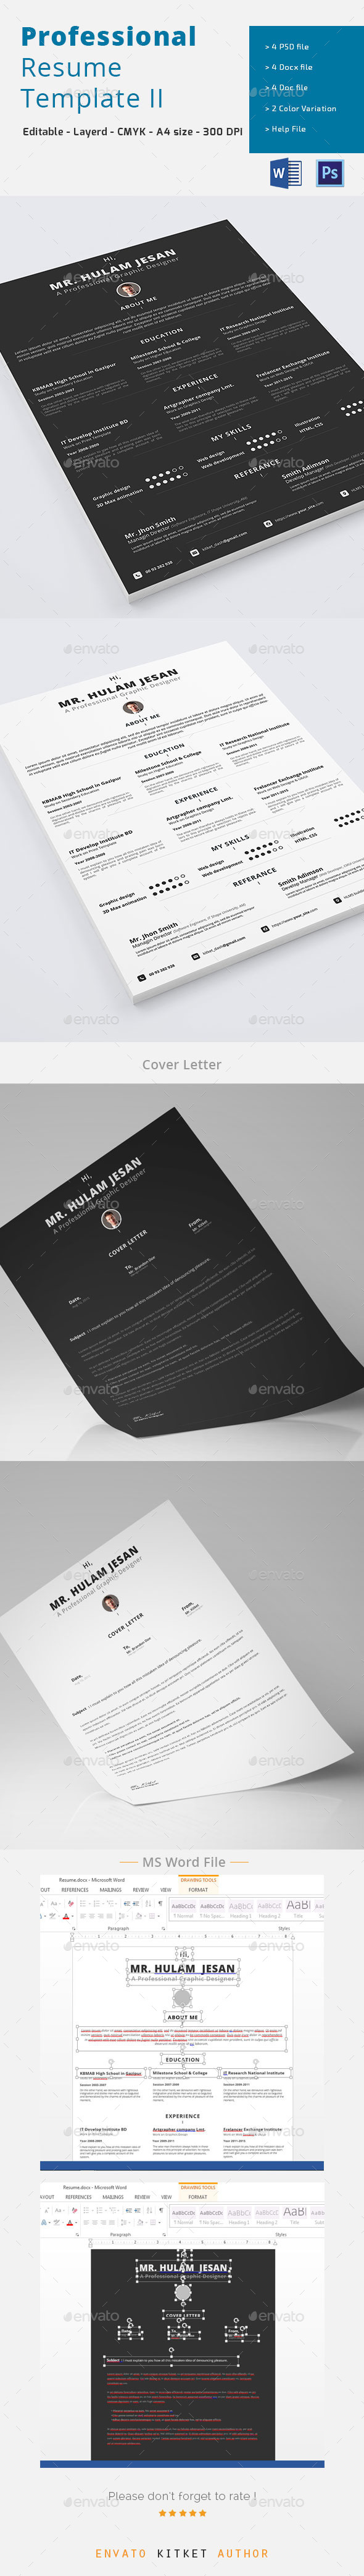 Professional Resume Template II - Resumes Stationery